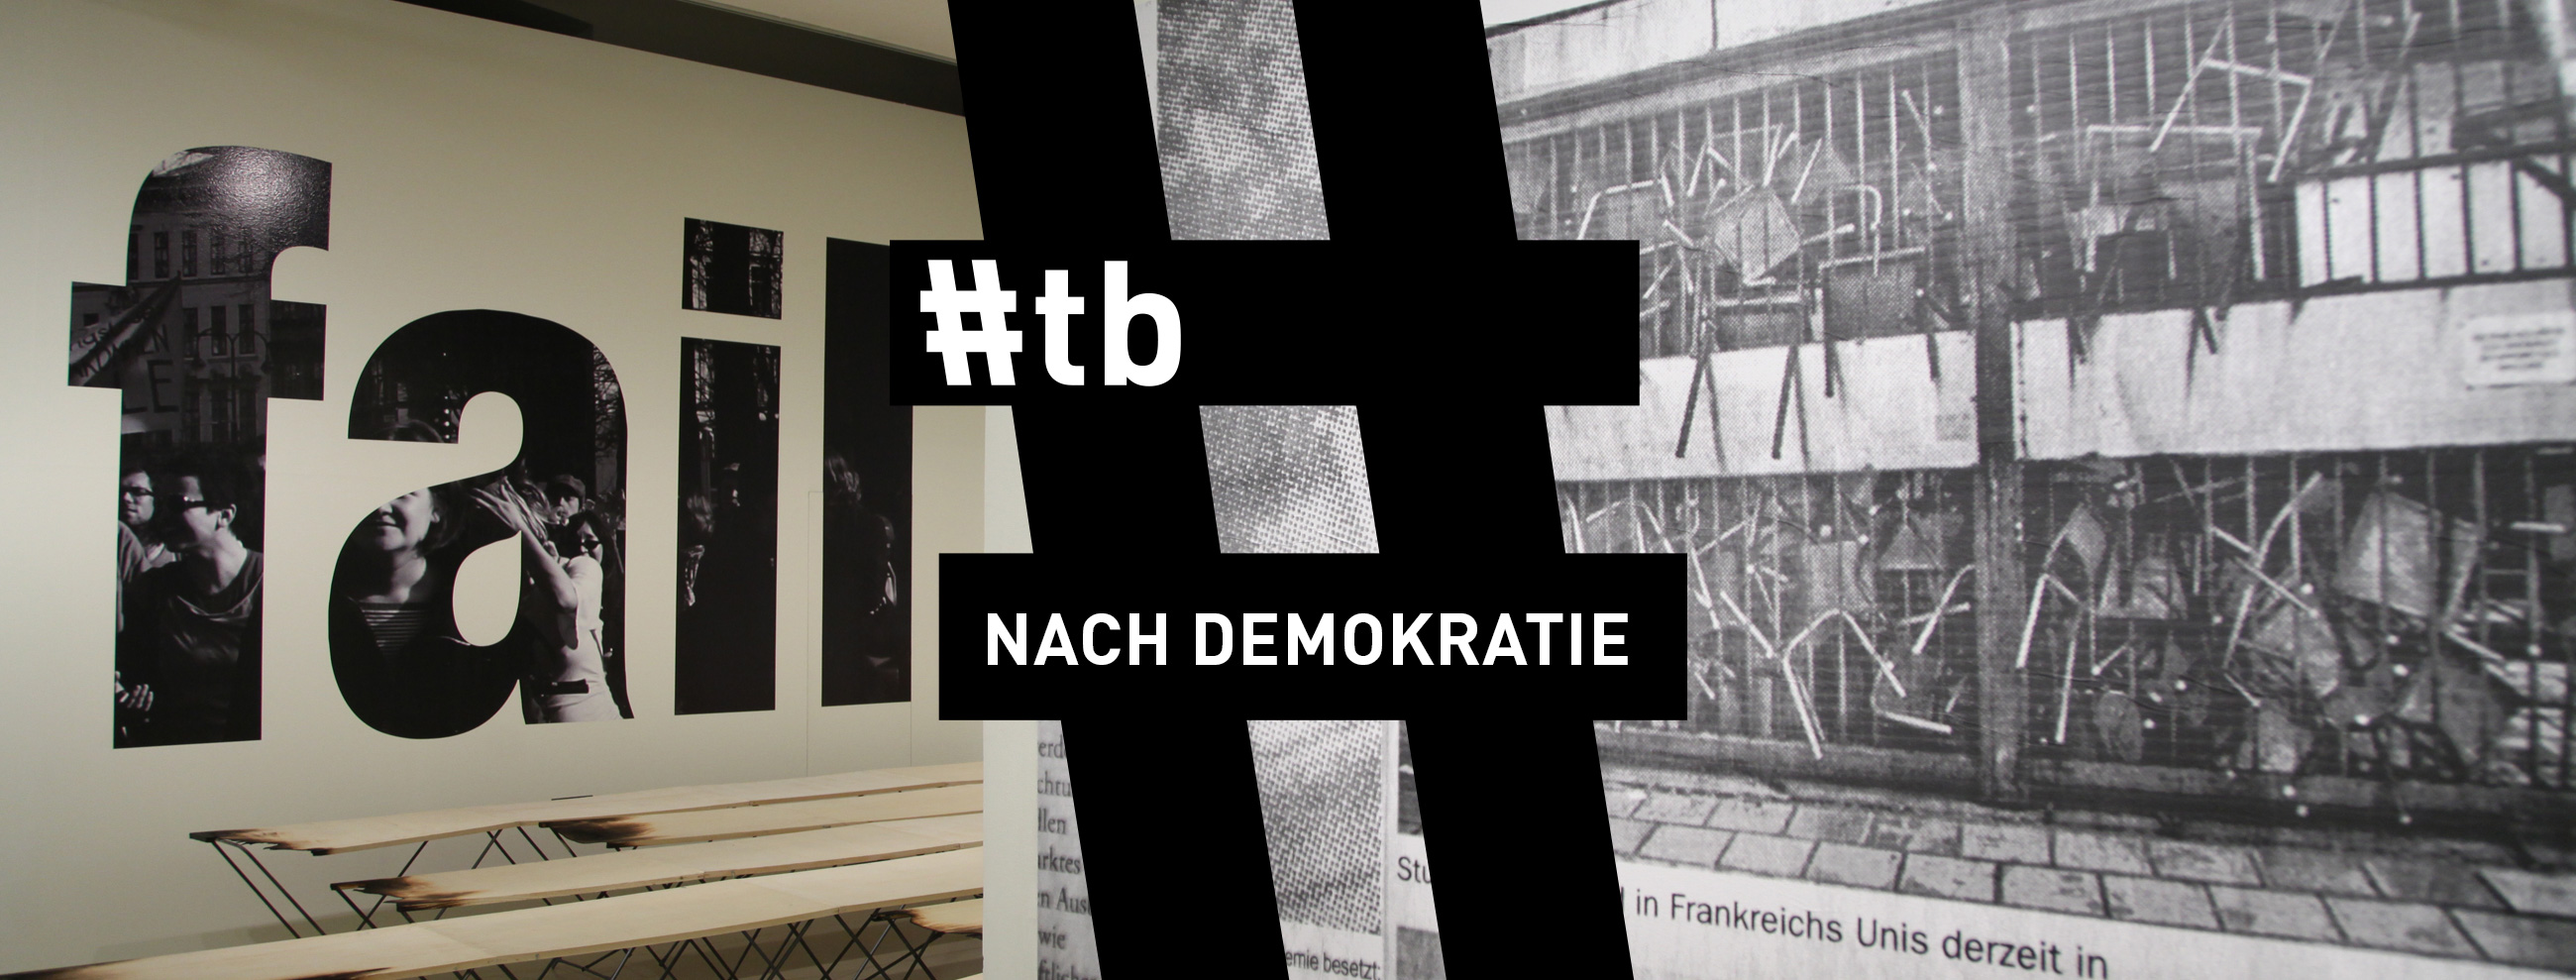 #tb: Nach Demokratie © photo: eSeL.at, graphic design: Andrea Lehsiak